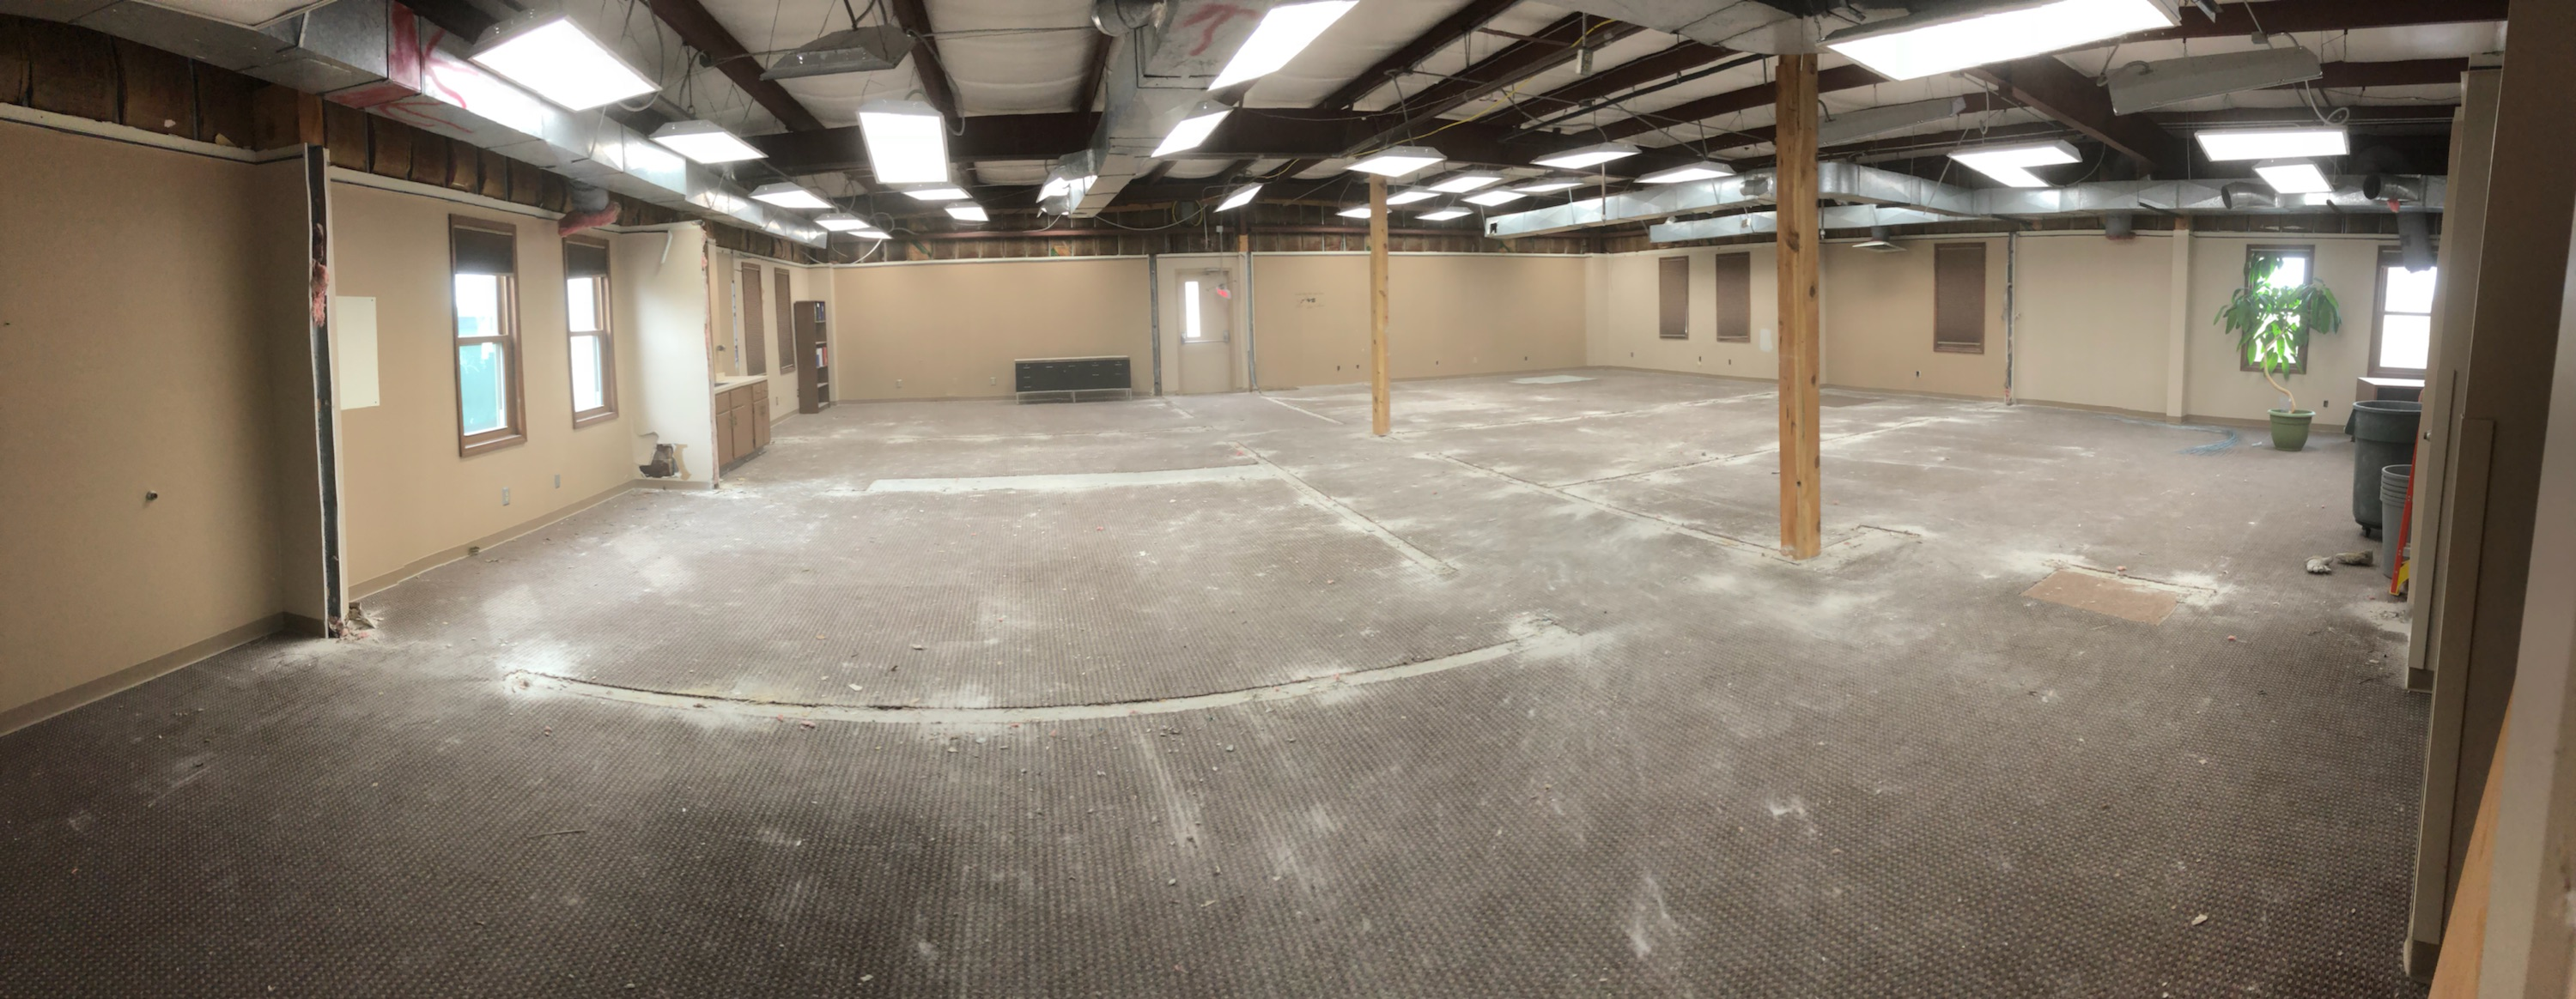 Old Board office facility with interior walls removed